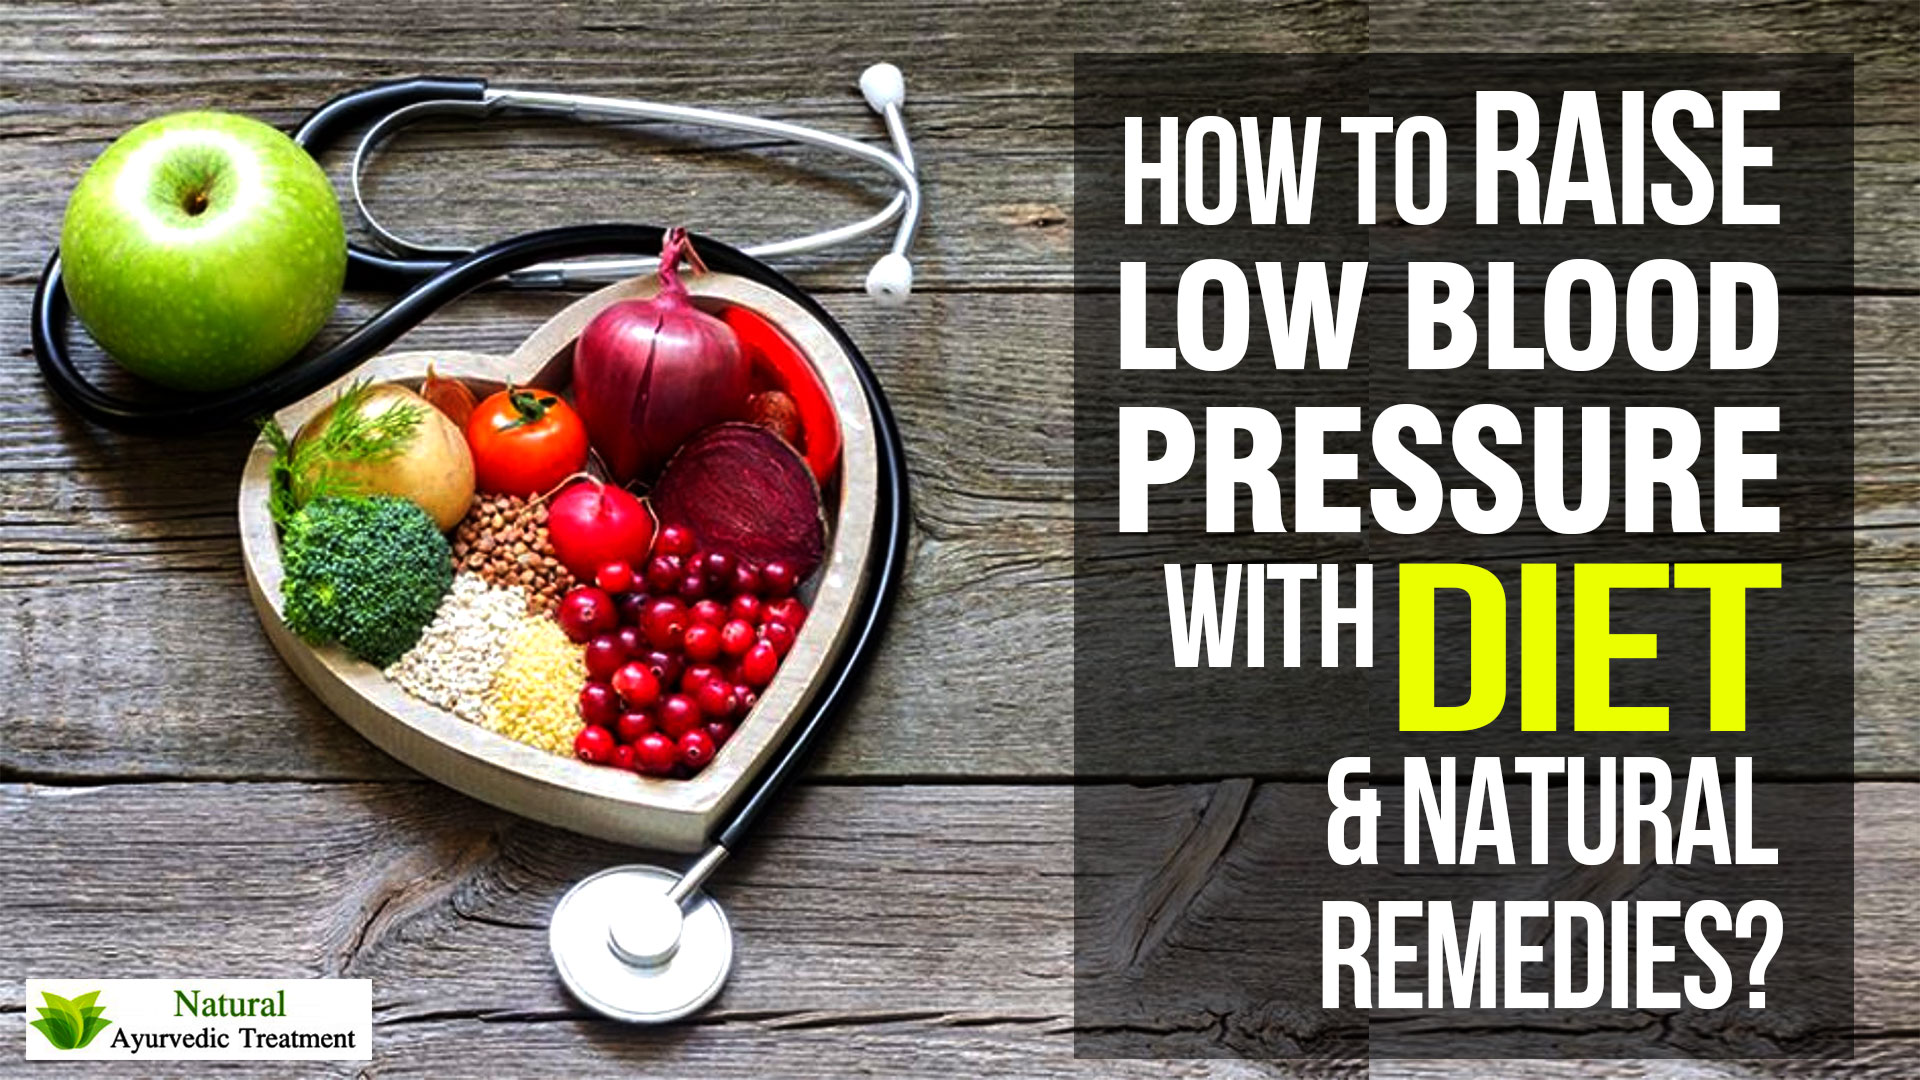 How to Raise Low Blood Pressure with Diet and Natural Remedies?